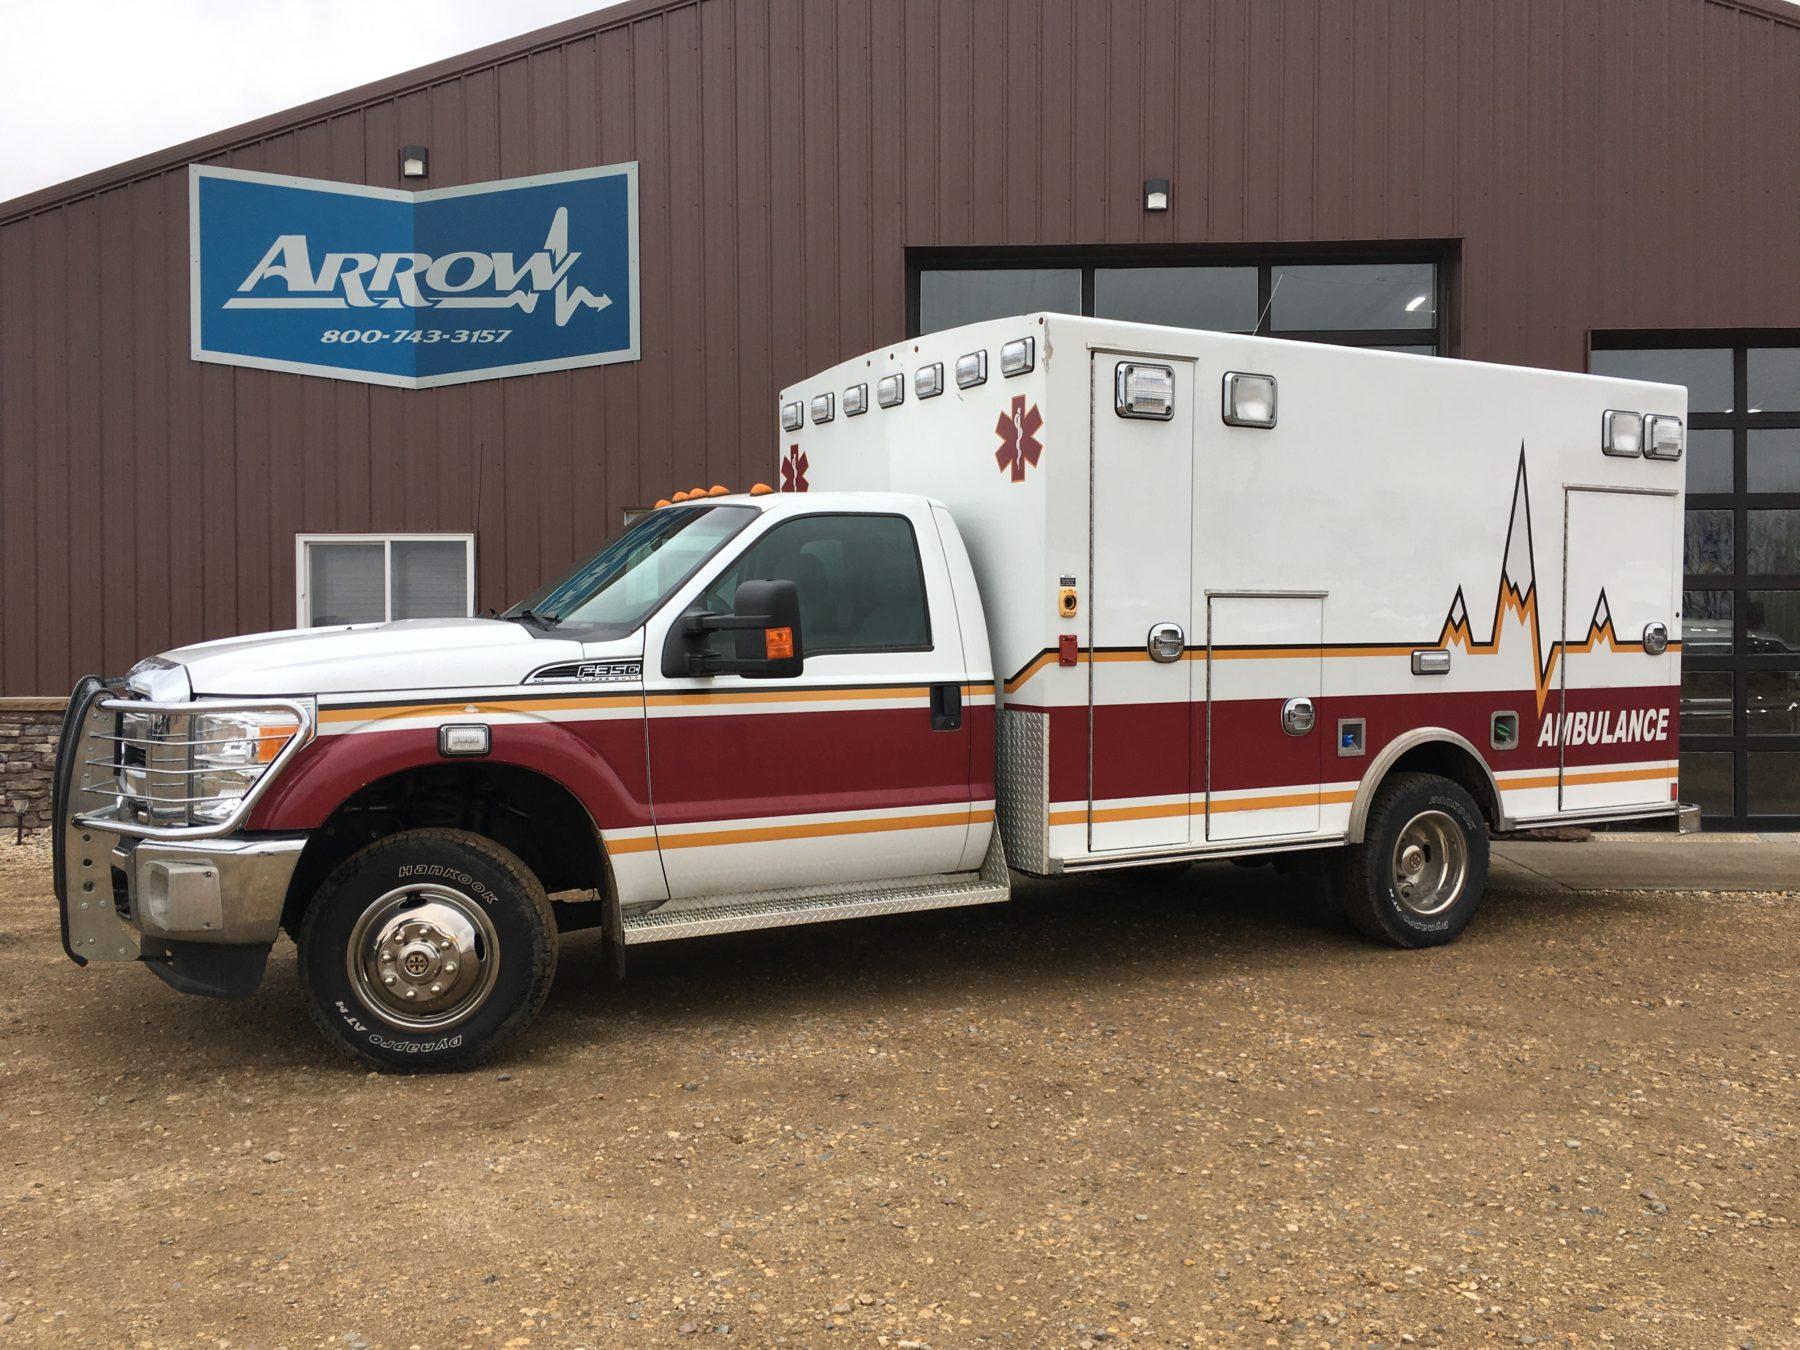 2012 Ford F350 4x4 Type 1 Ambulance For Sale – Picture 1